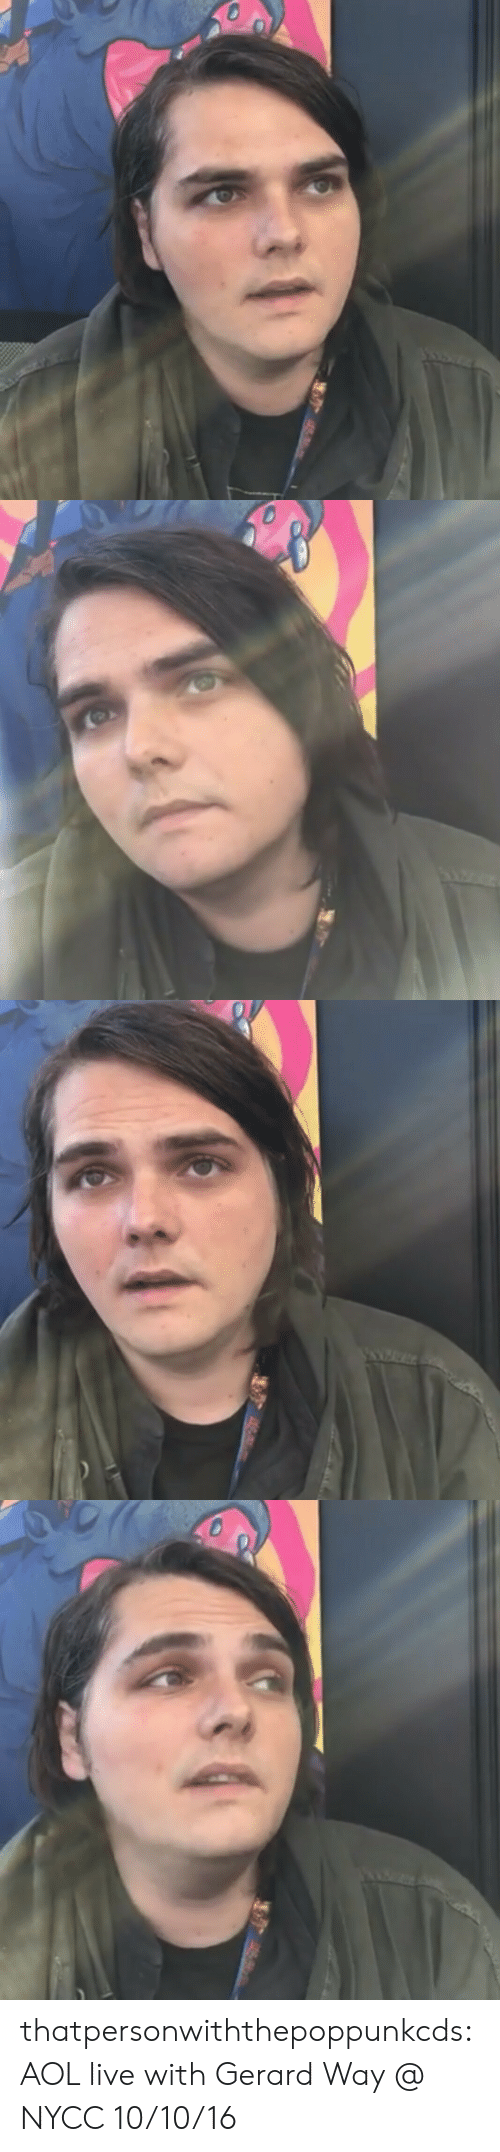 aol: thatpersonwiththepoppunkcds:  AOL live with Gerard Way @ NYCC 10/10/16